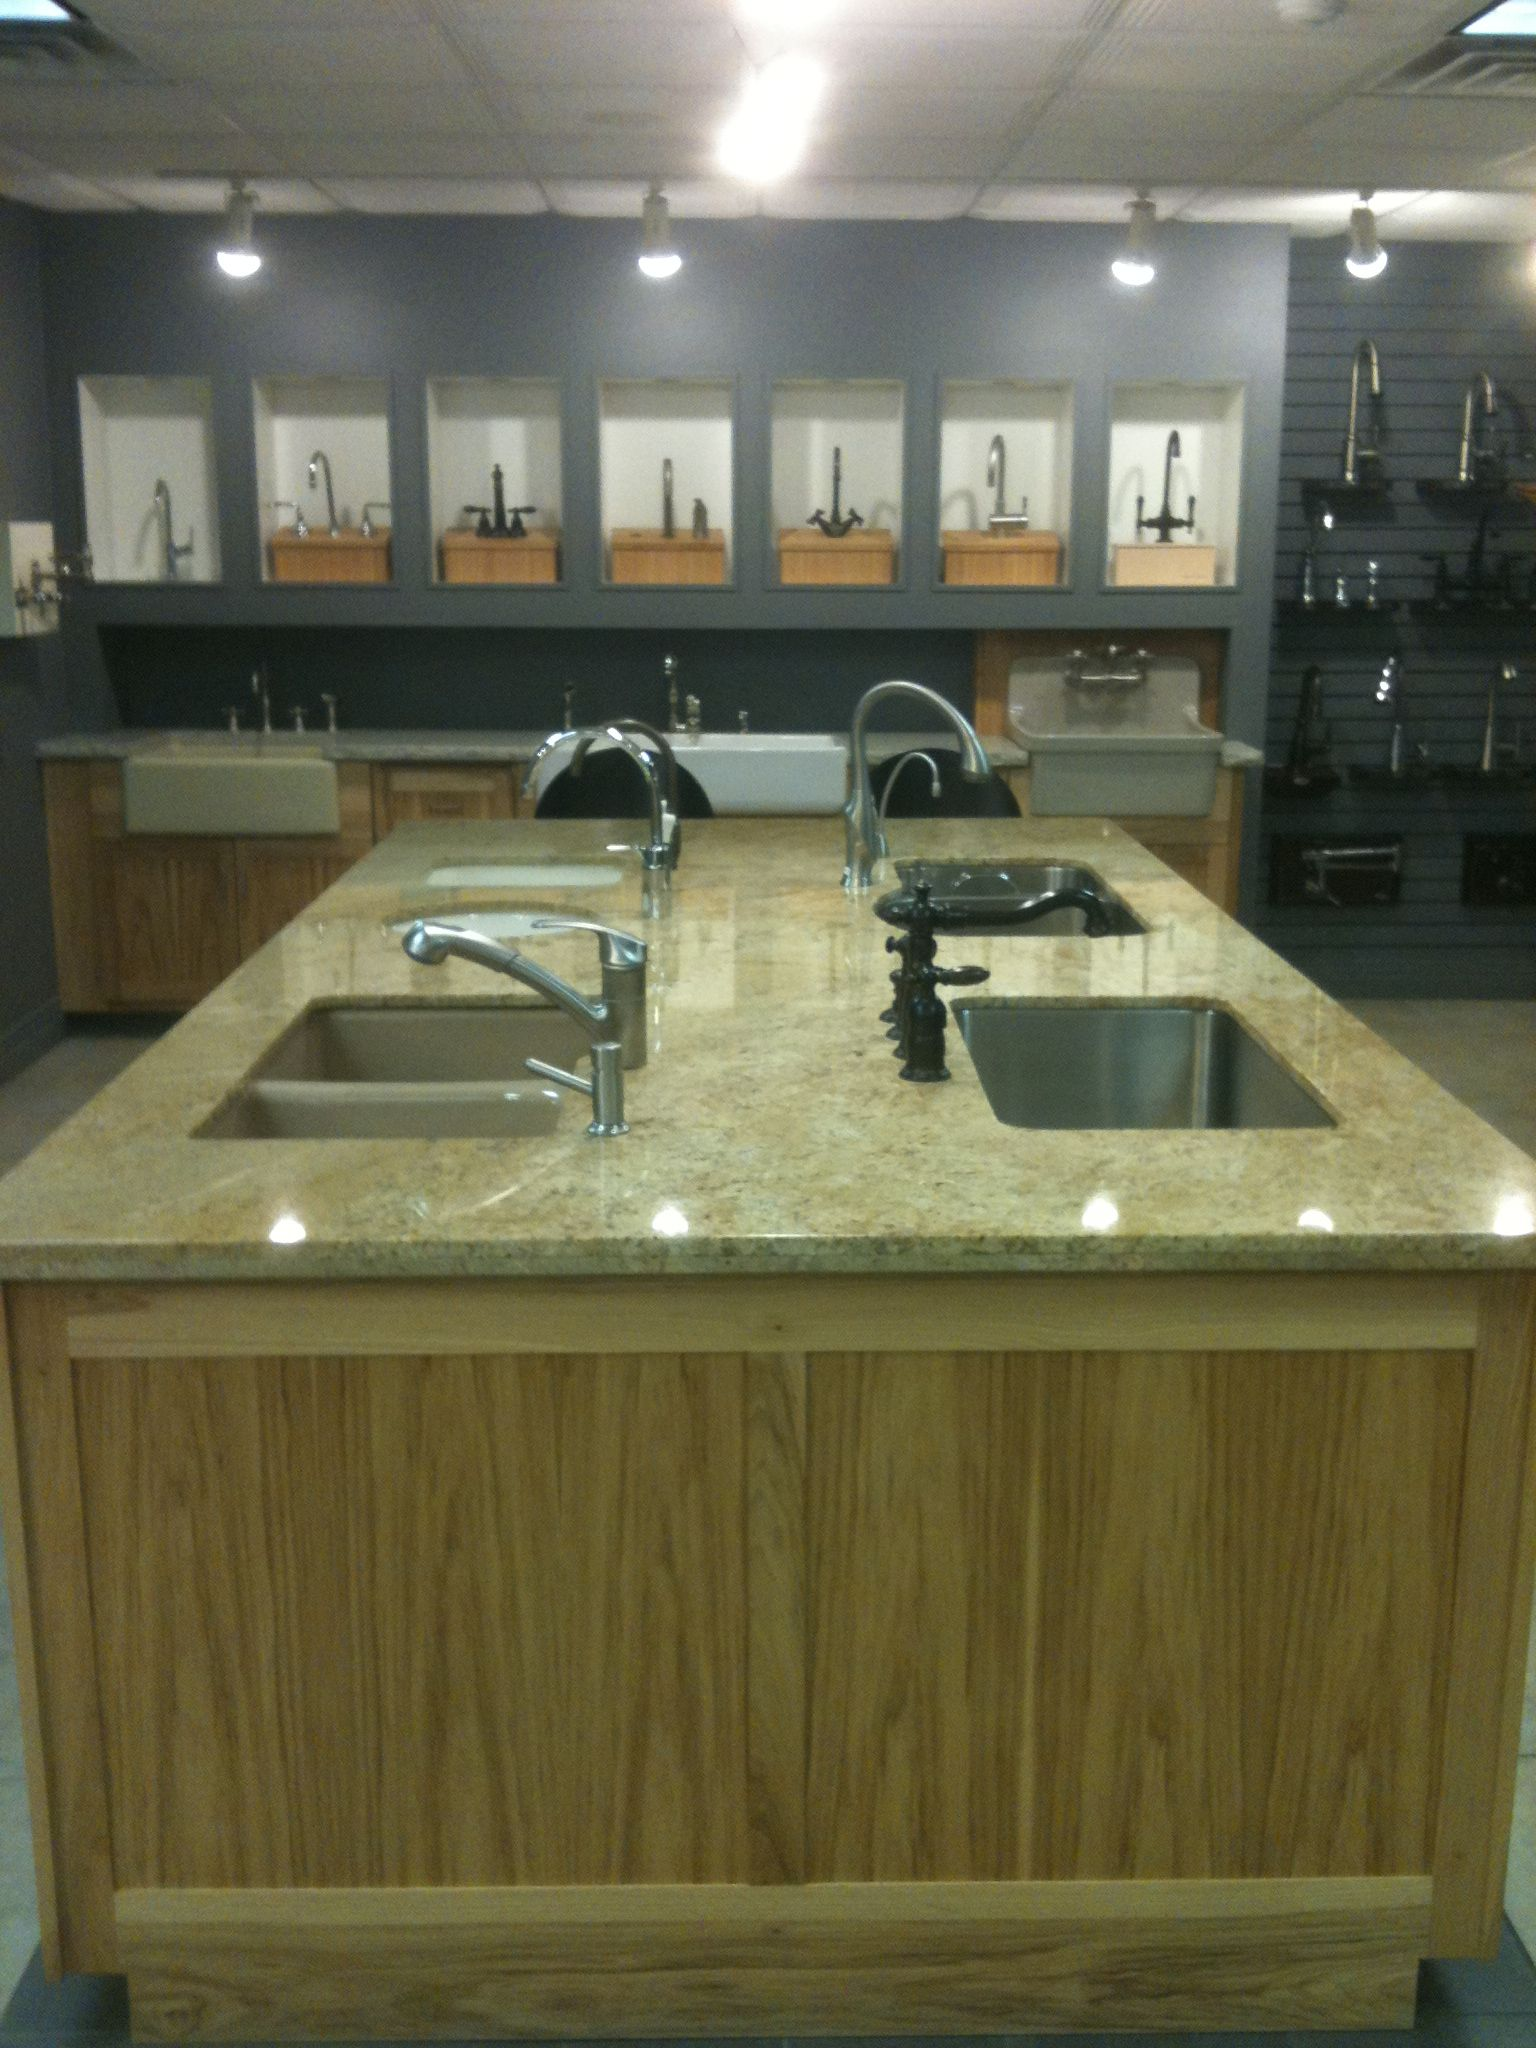 Kitchen Design Showroom Denver Co Kitchen Sink And Kitchen Faucet Options Our Denver